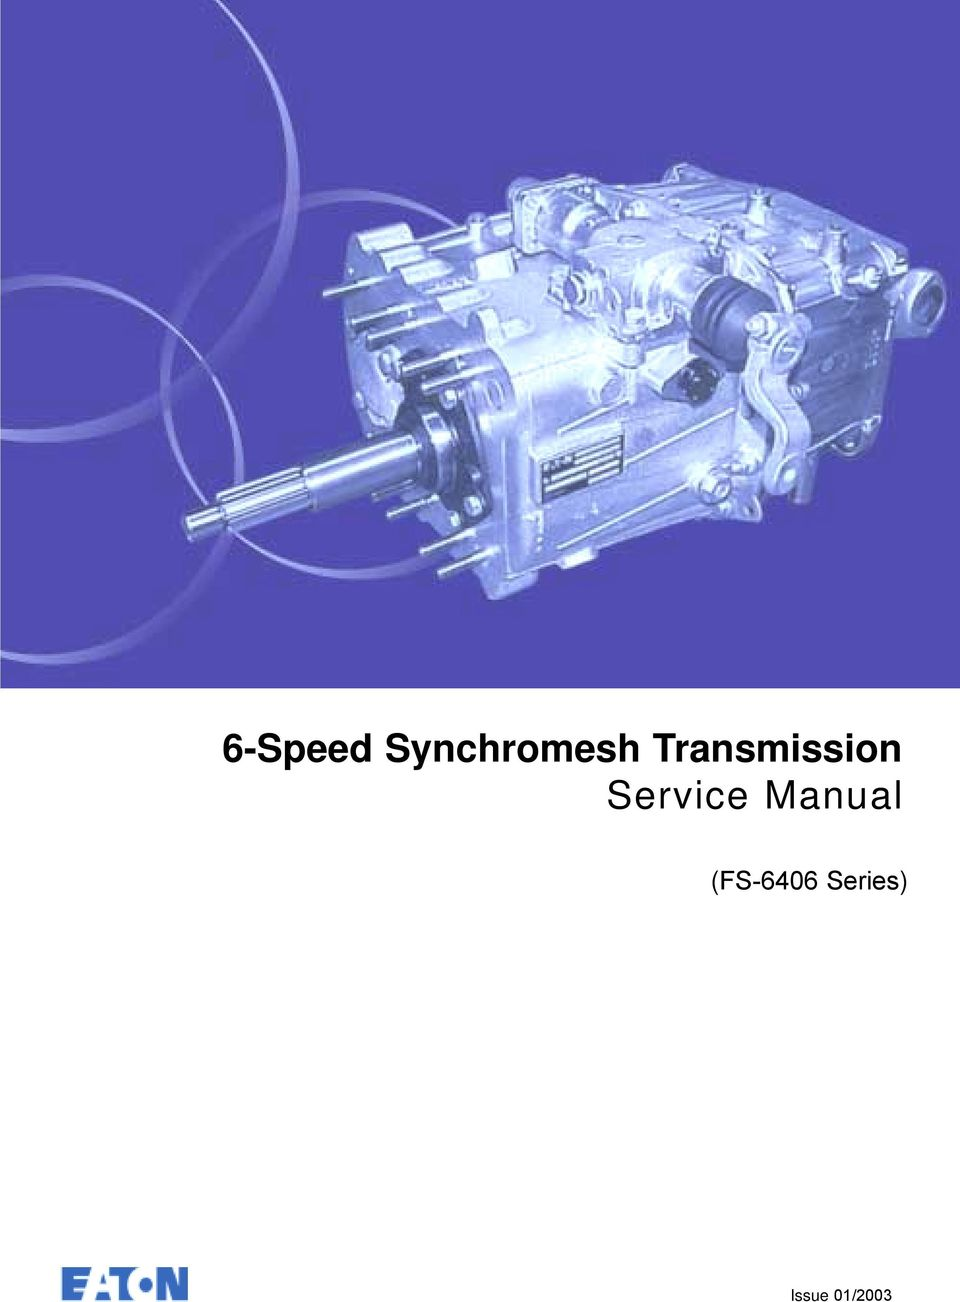 6-Speed Synchromesh Transmission Service Manual  (FS-6406